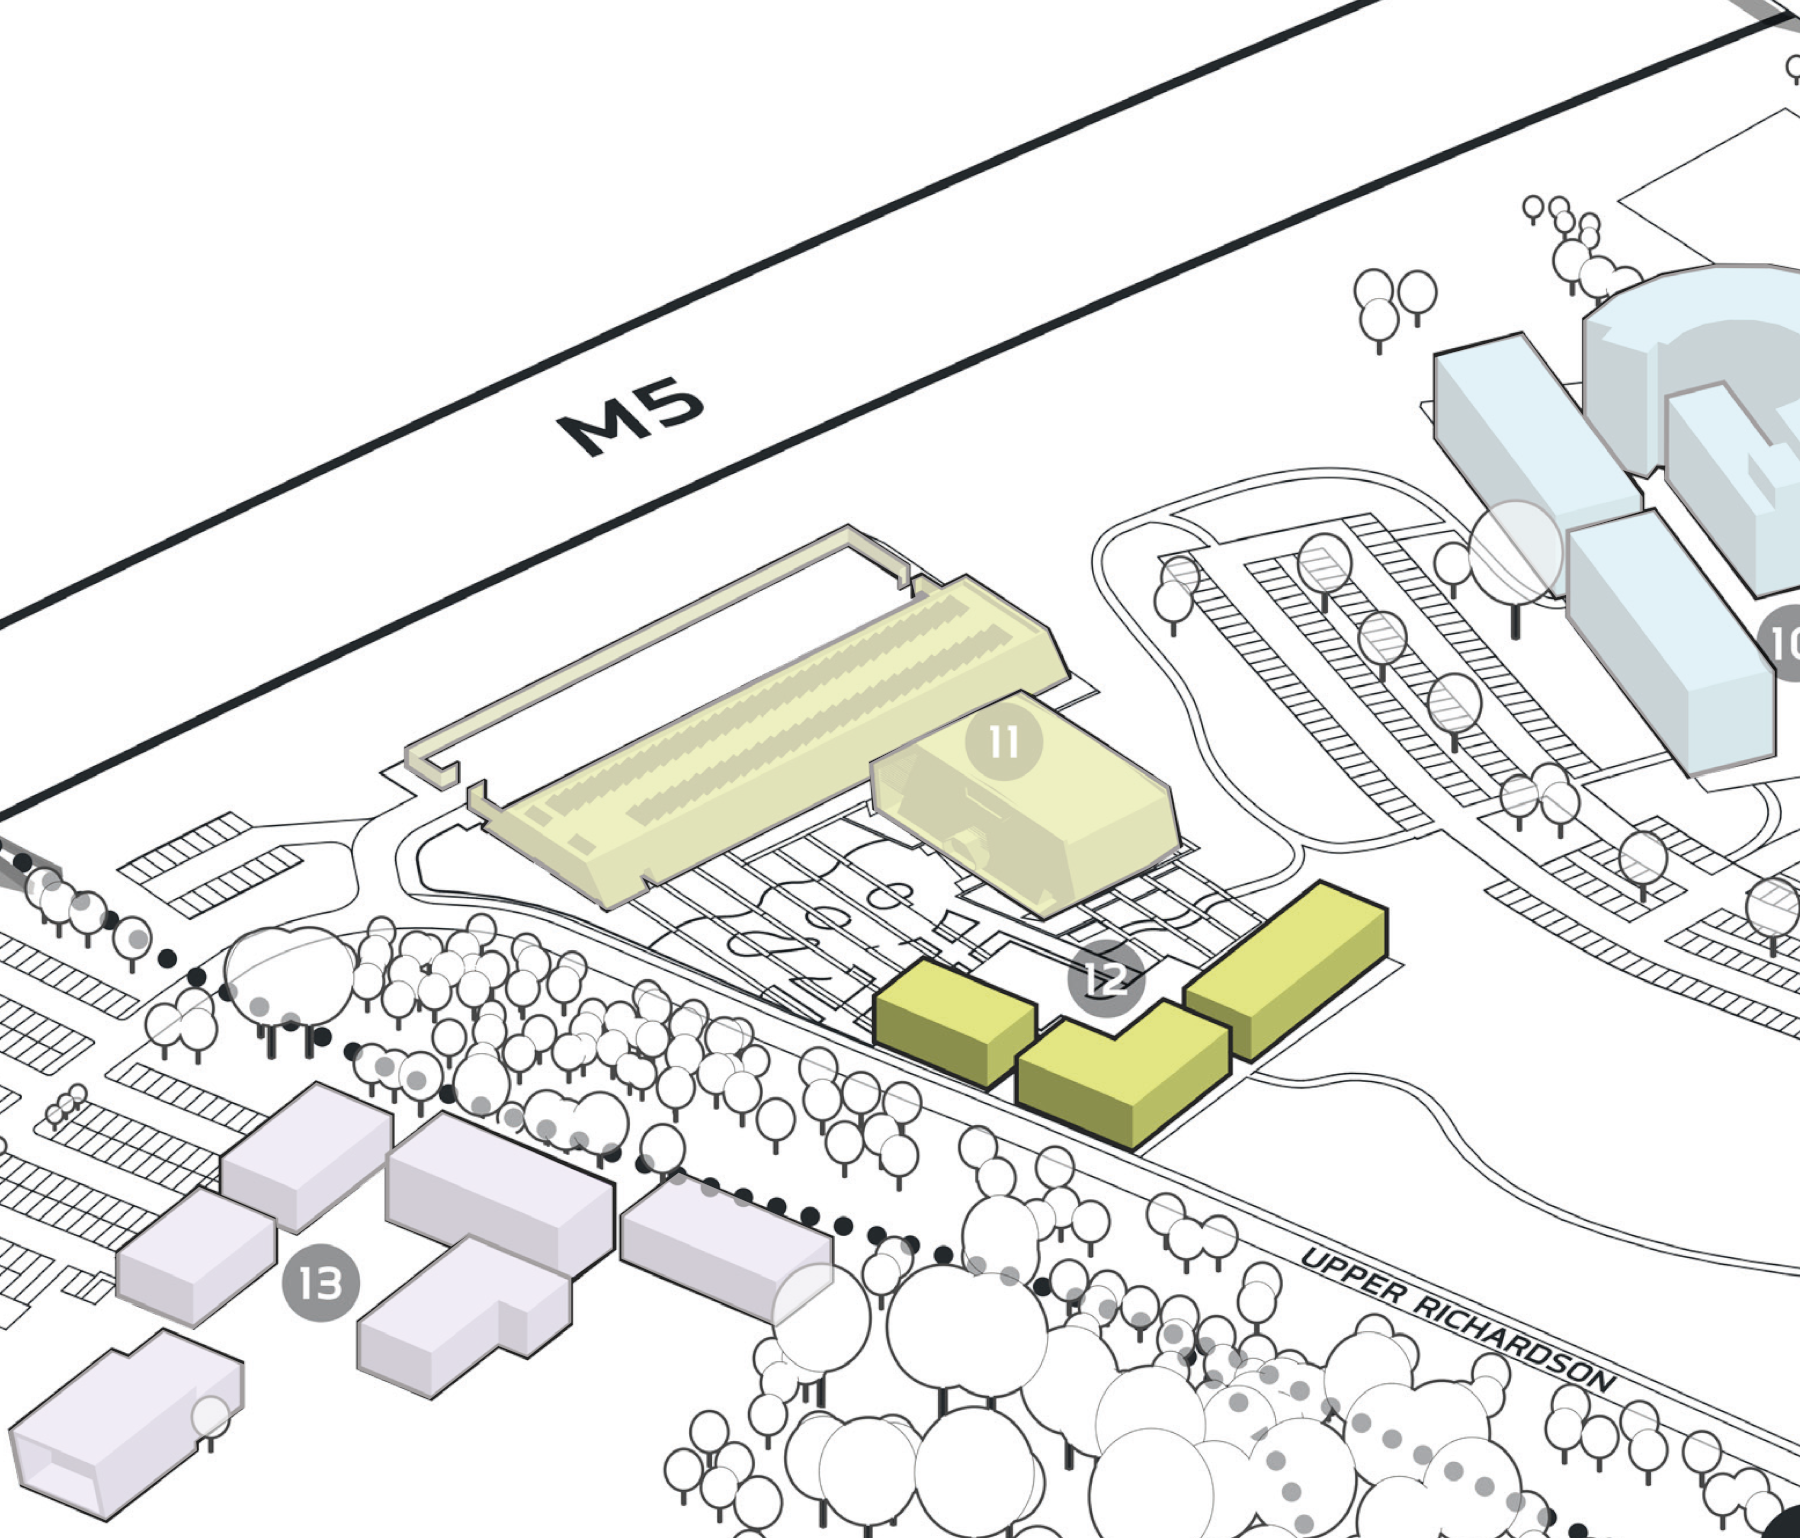 Park Plan highlighting cluster B Building 12